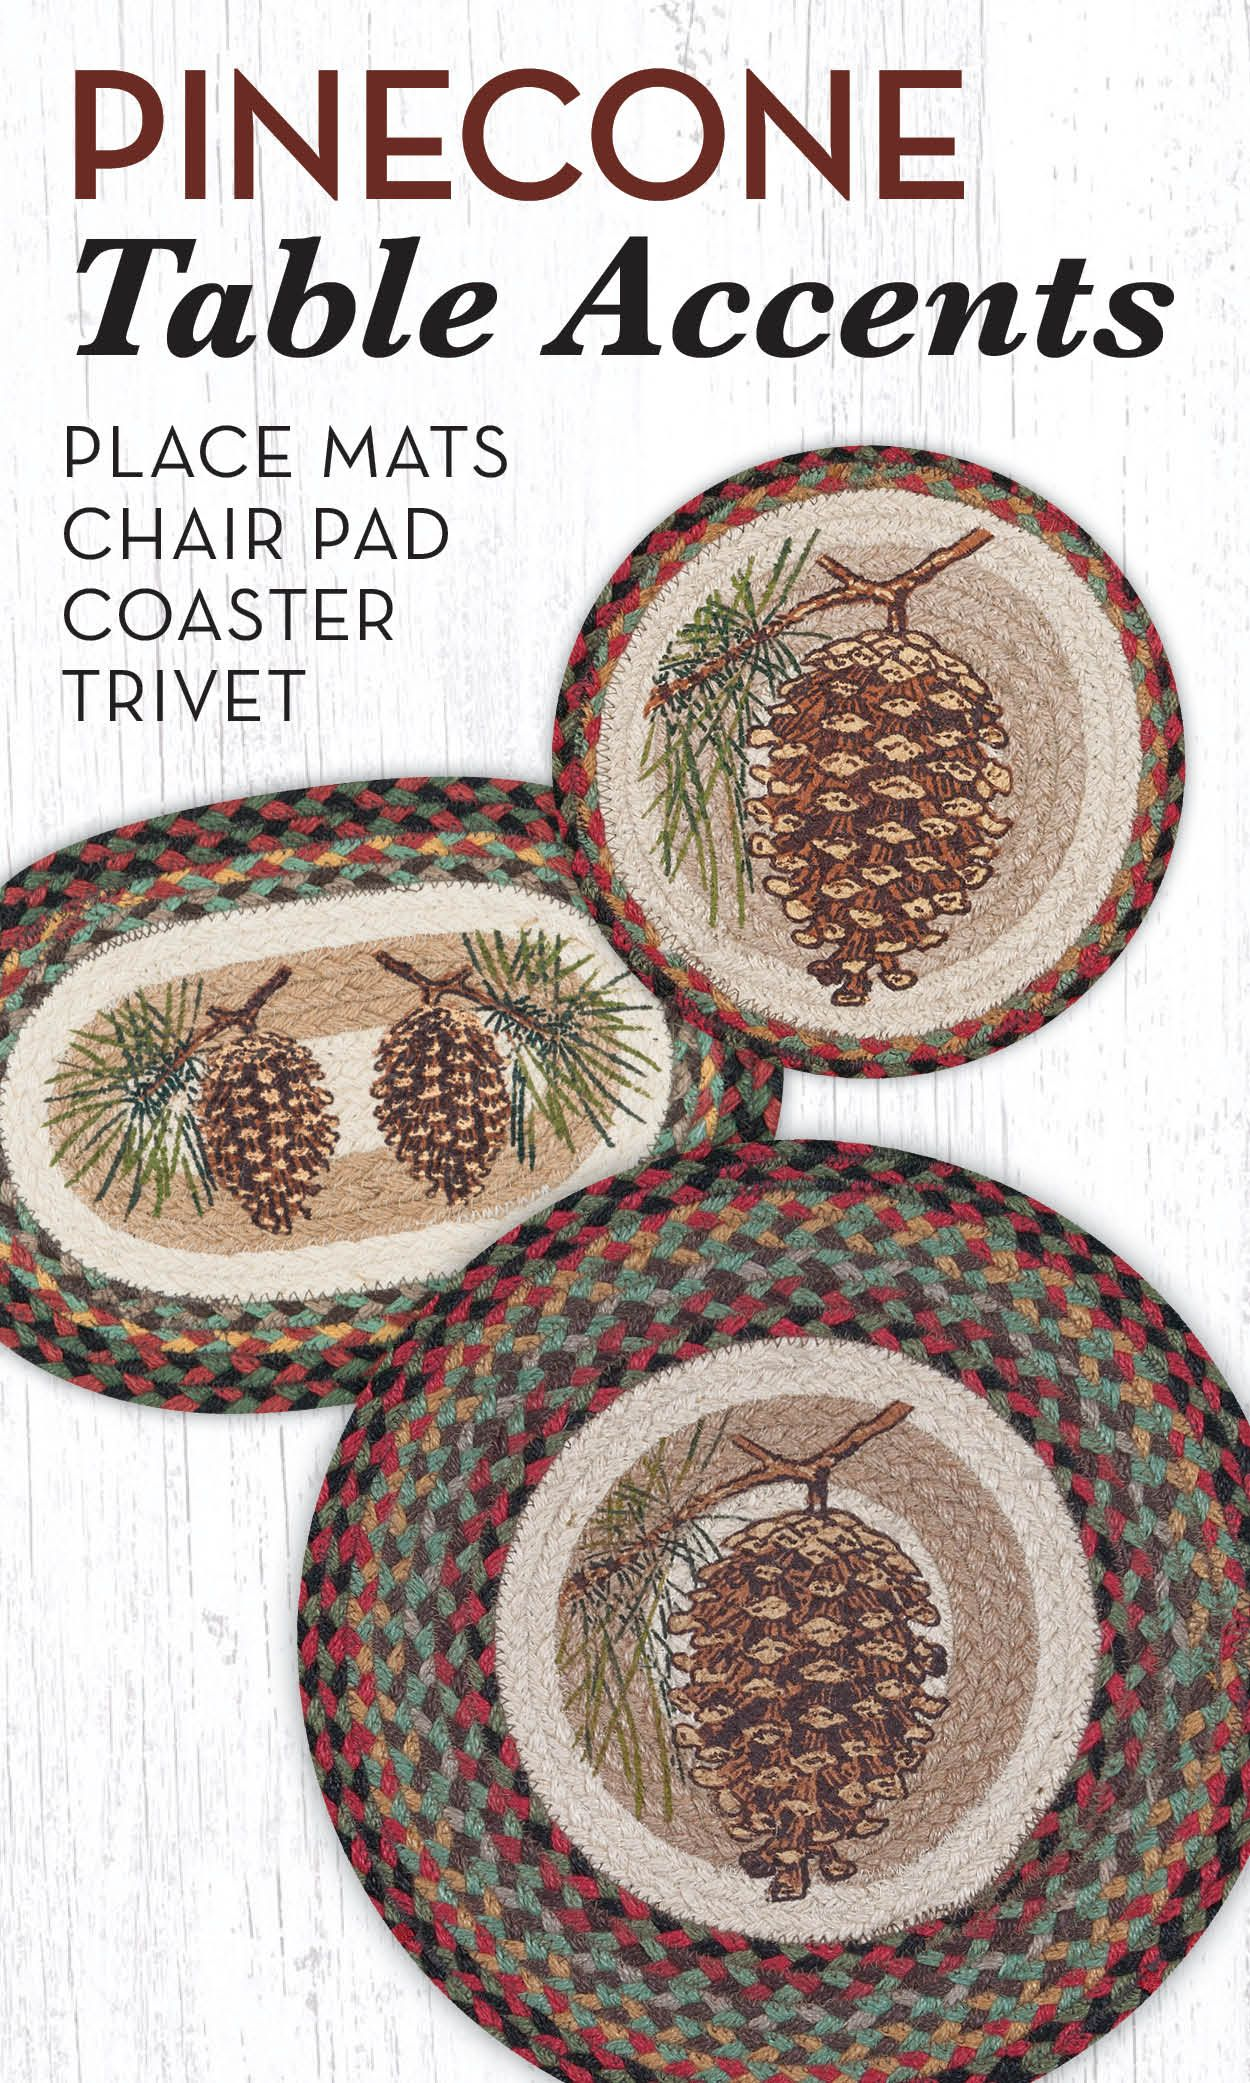 pinecone round placemat table settings pine accent with theme place mats trivets coaster and chairpad great for cabin rustic themed decor tablesettings bathroom styles lime green